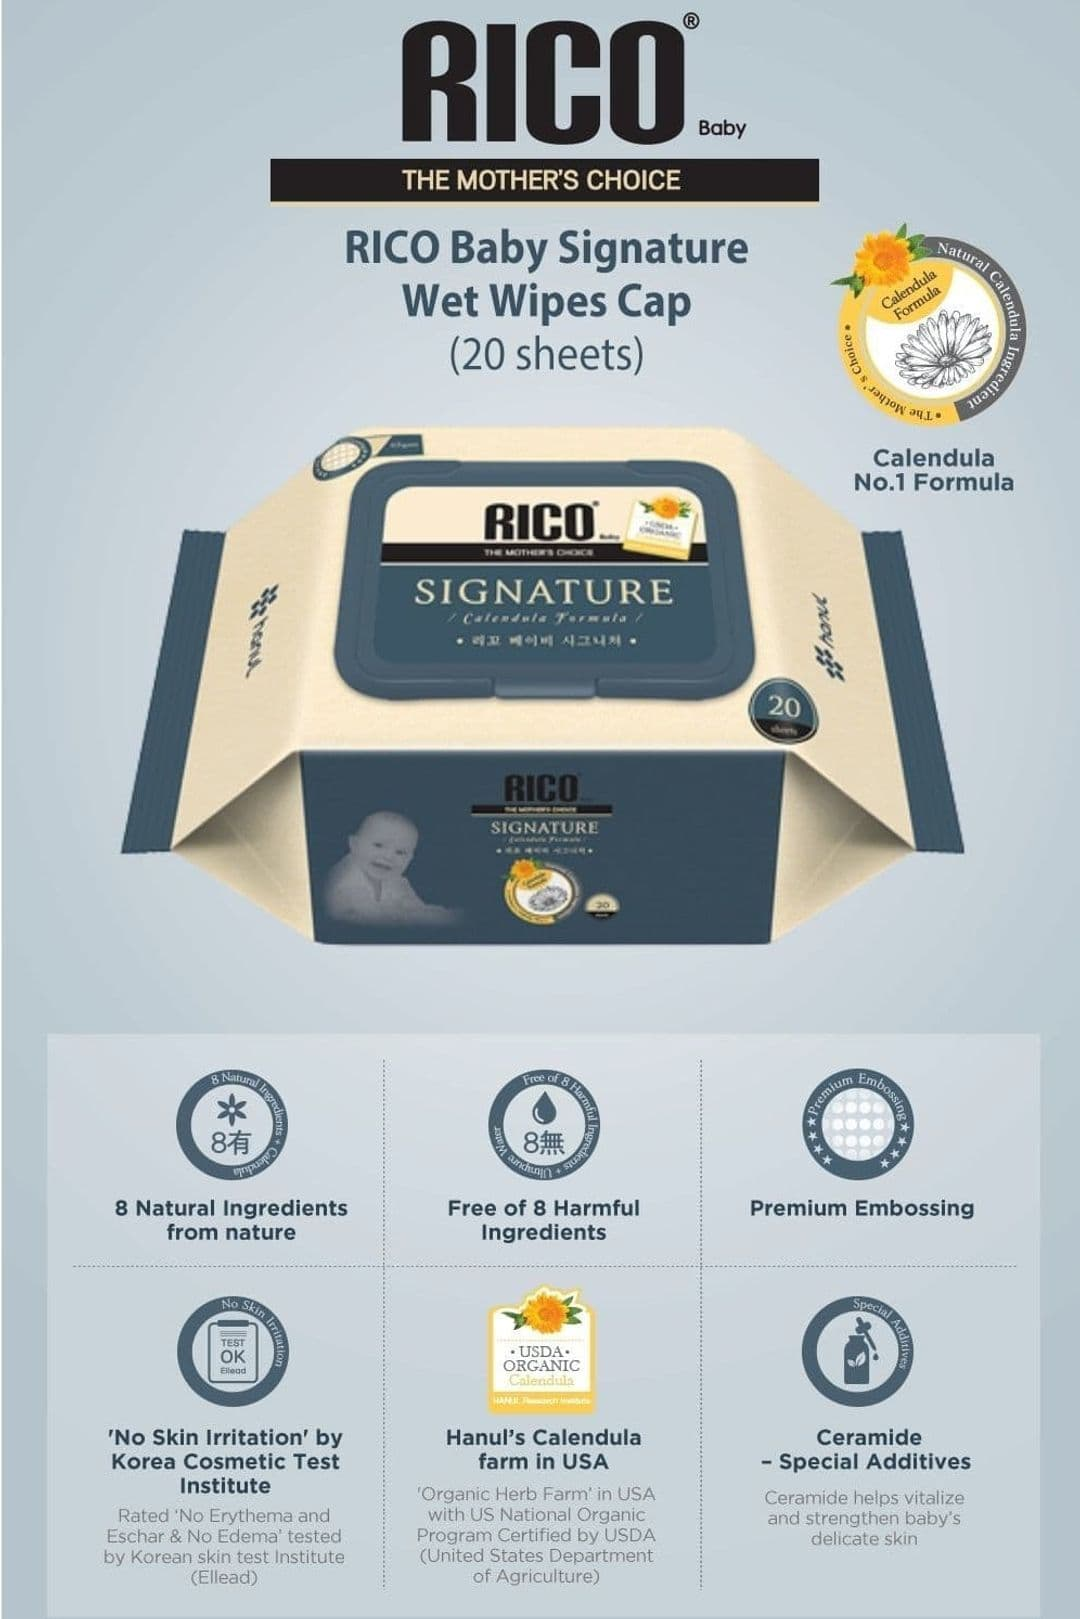 Rico Signature Wet Wipes Introduction